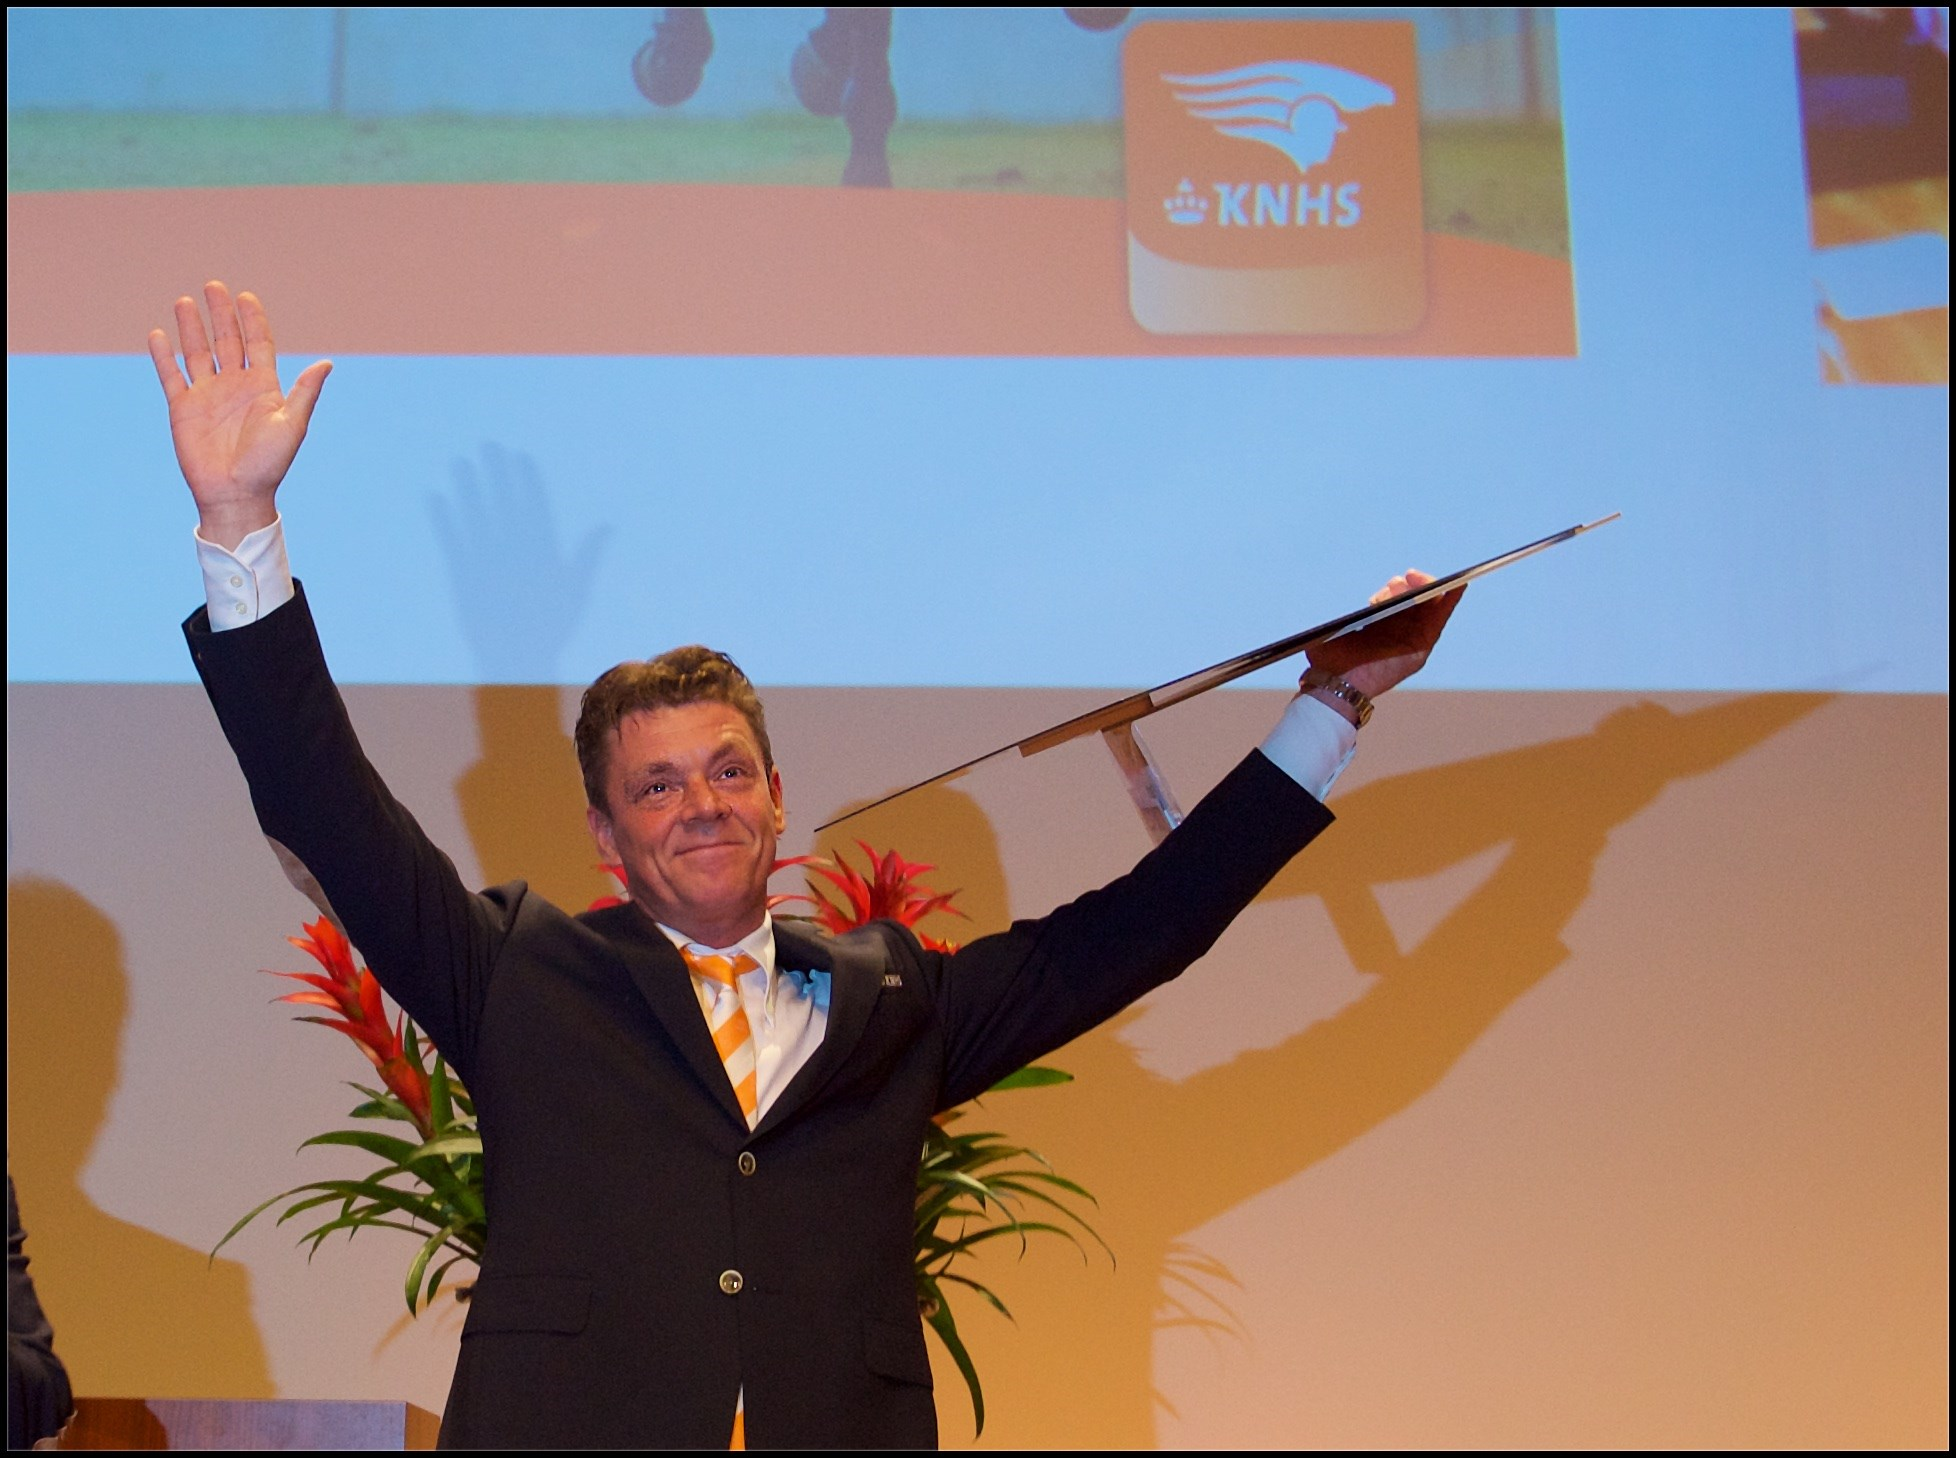 Impressie huldiging internationale paardensportkampioenen 2015